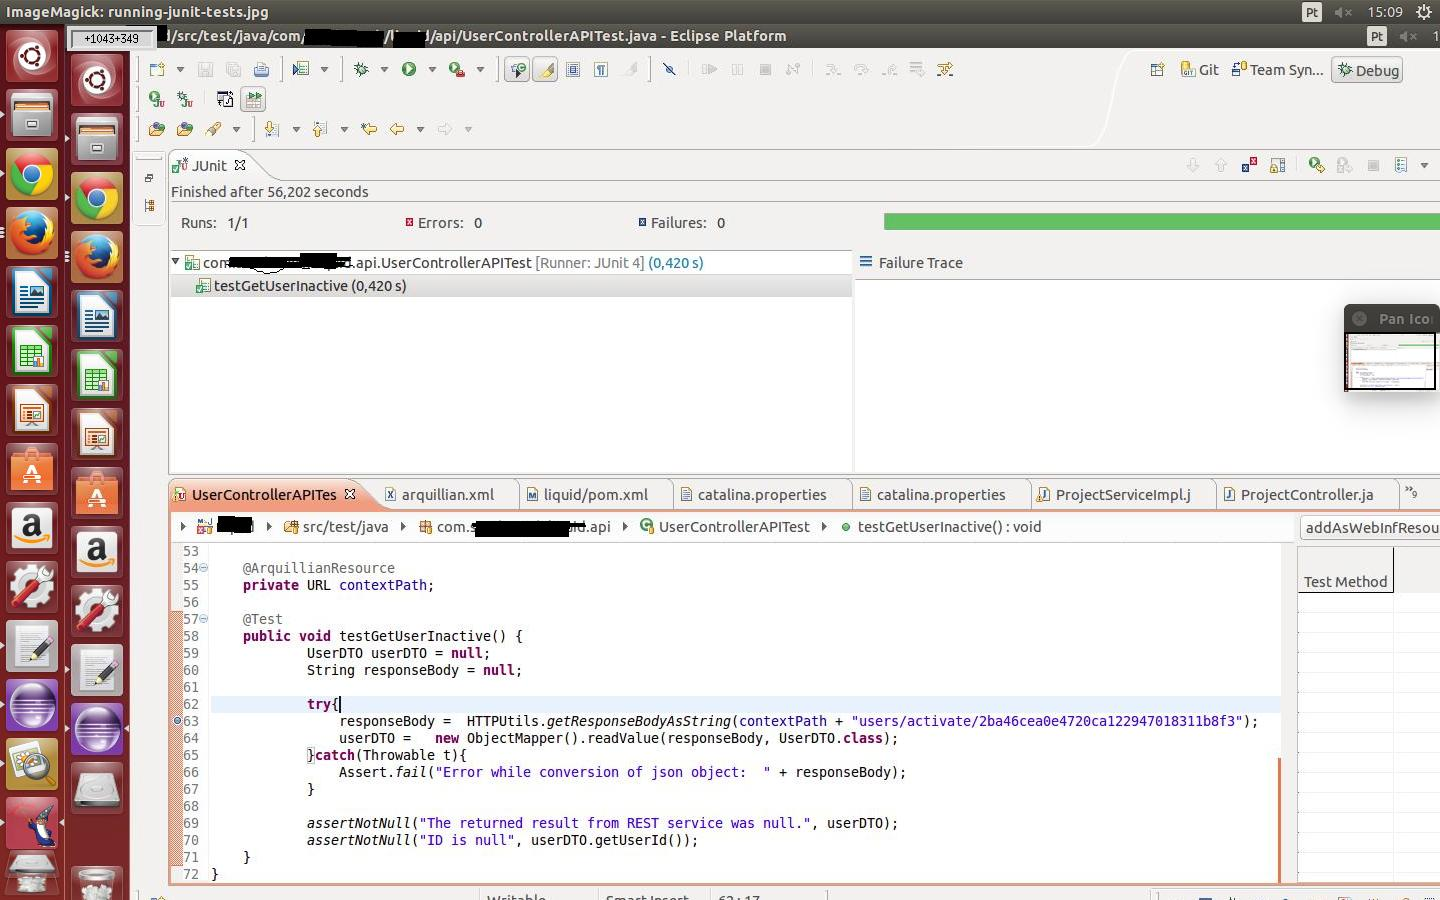 junit-eclipse-plugin-running-arquillian-tests-ok.jpg